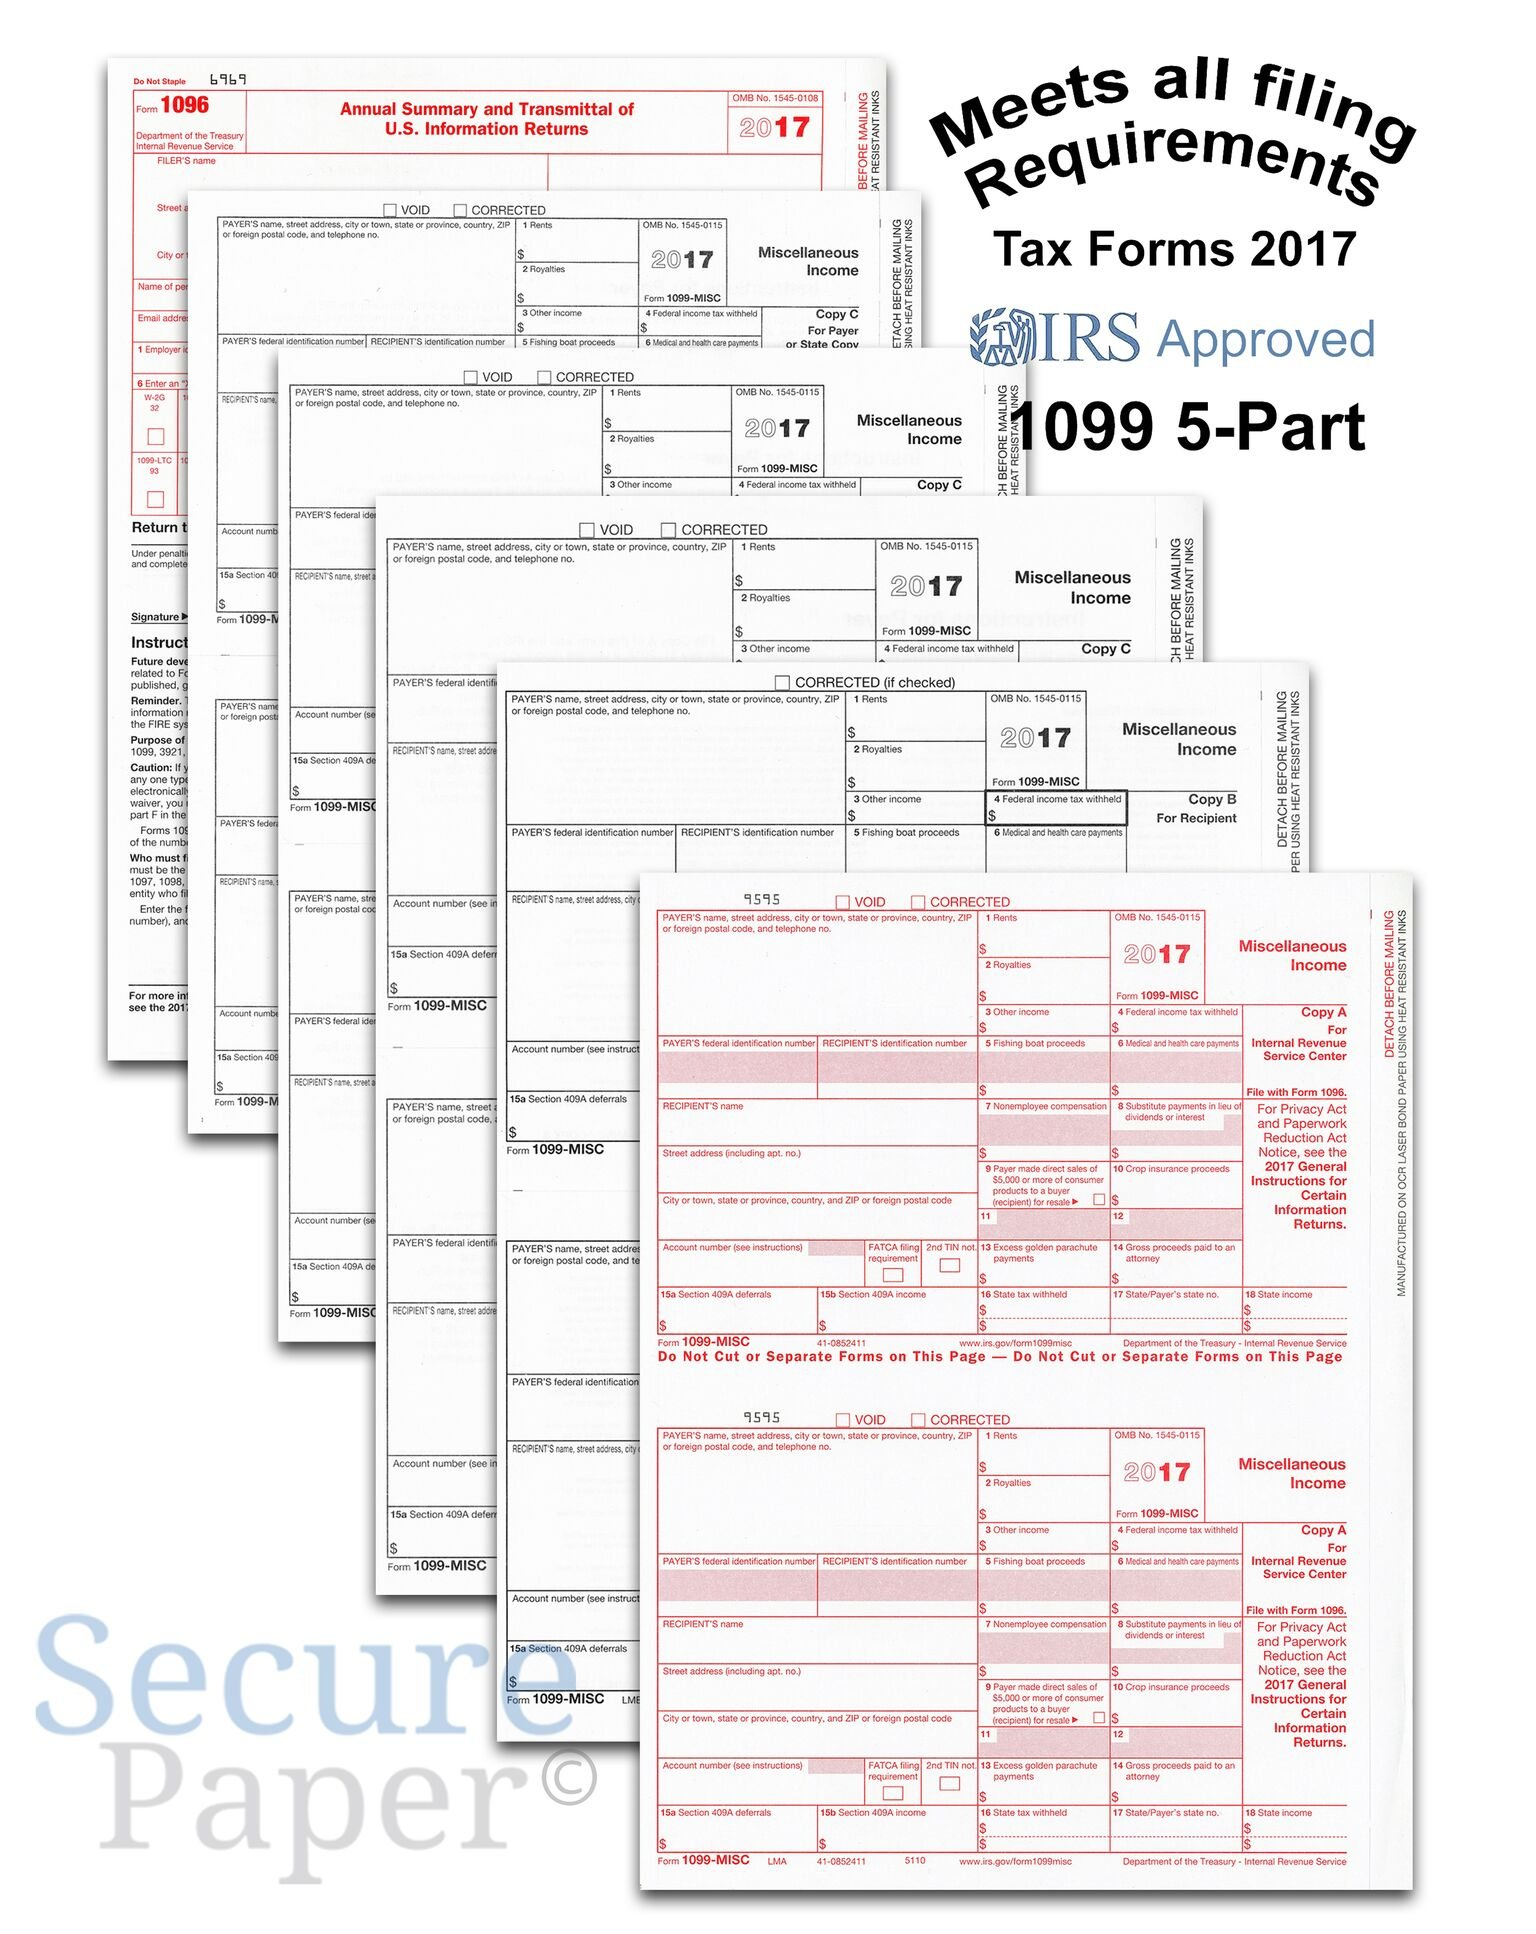 Complete Laser 1099 Misc Tax Form set And 1096 - Kit For 25 Vendors ~5-Part~ All 1099 Forms in Value Pack | 1099 Misc 2017